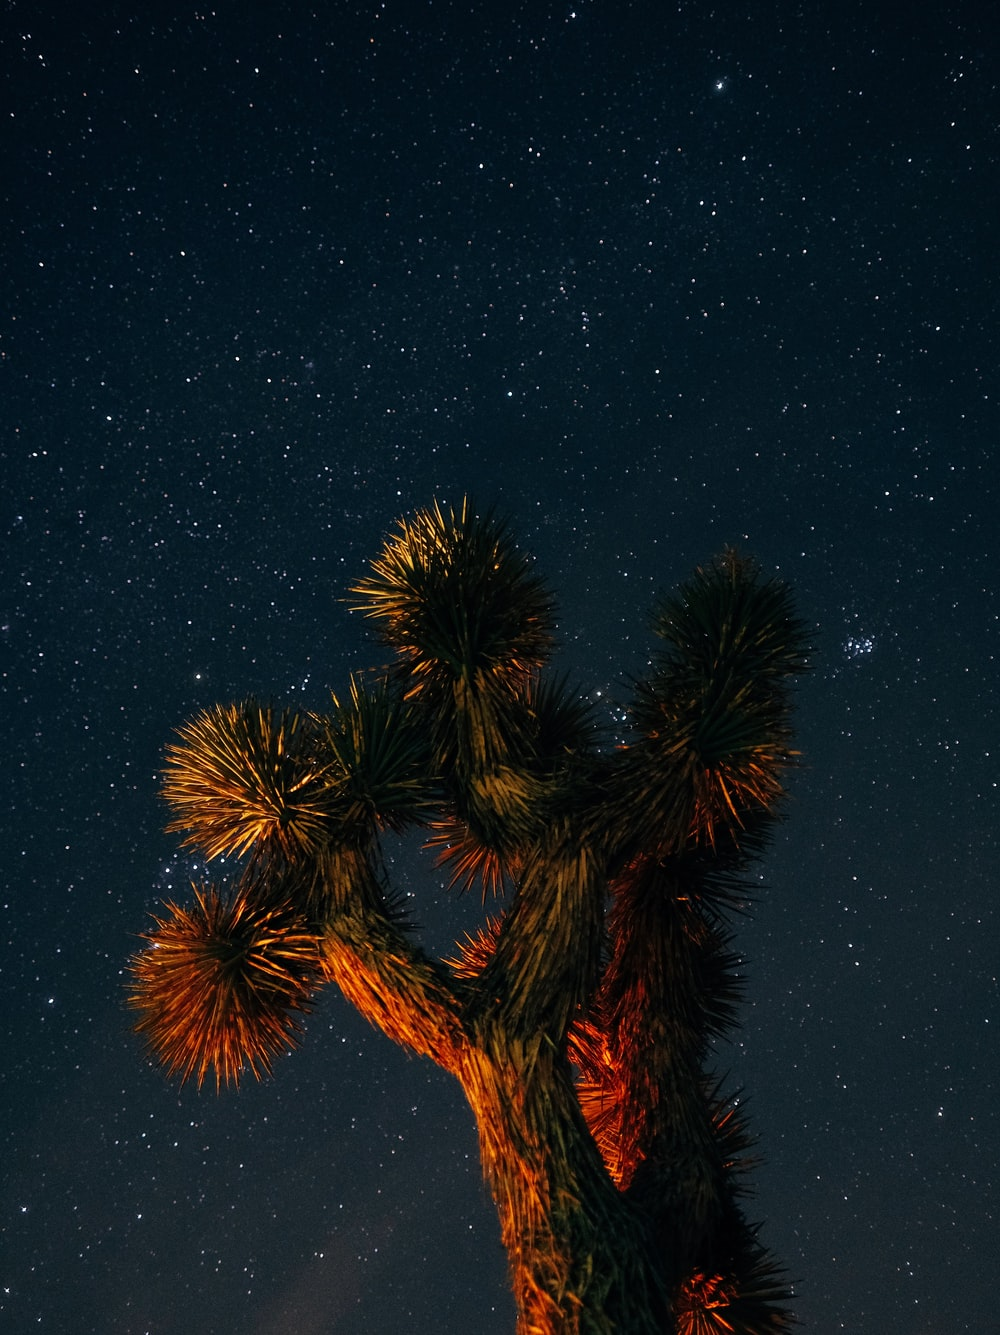 brown cactus plant at night time